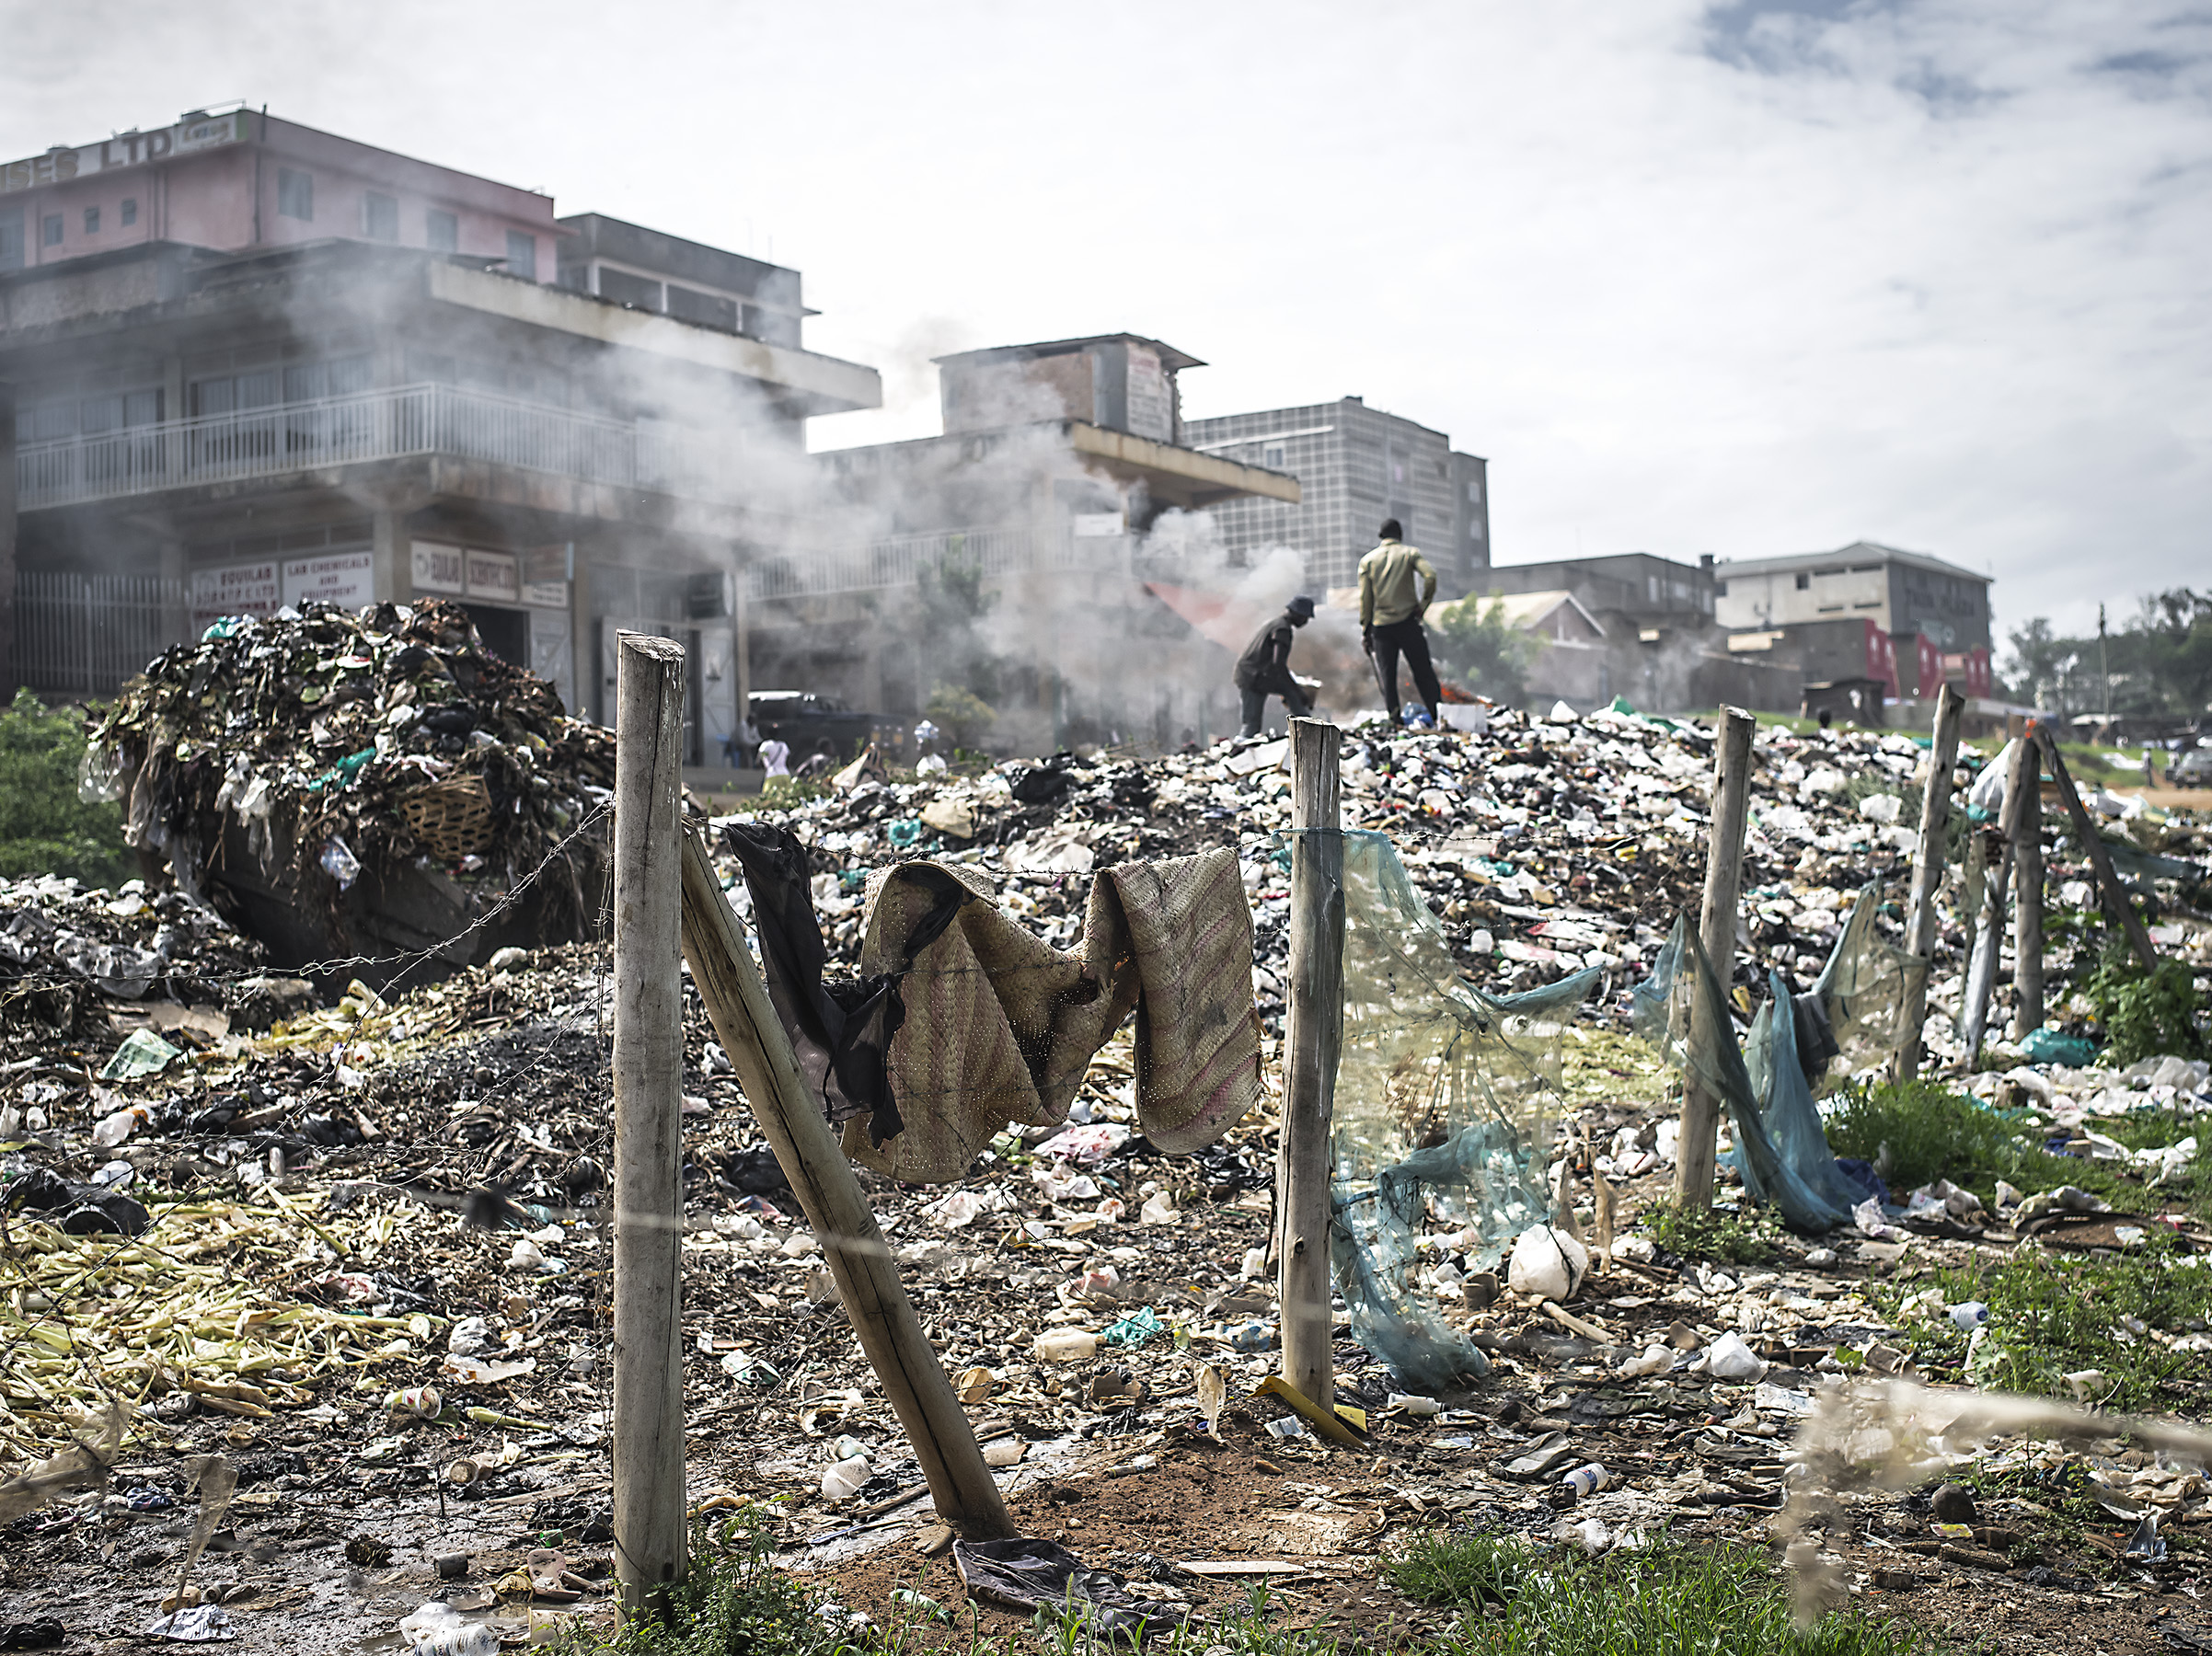 Burning trash in Mbarara.